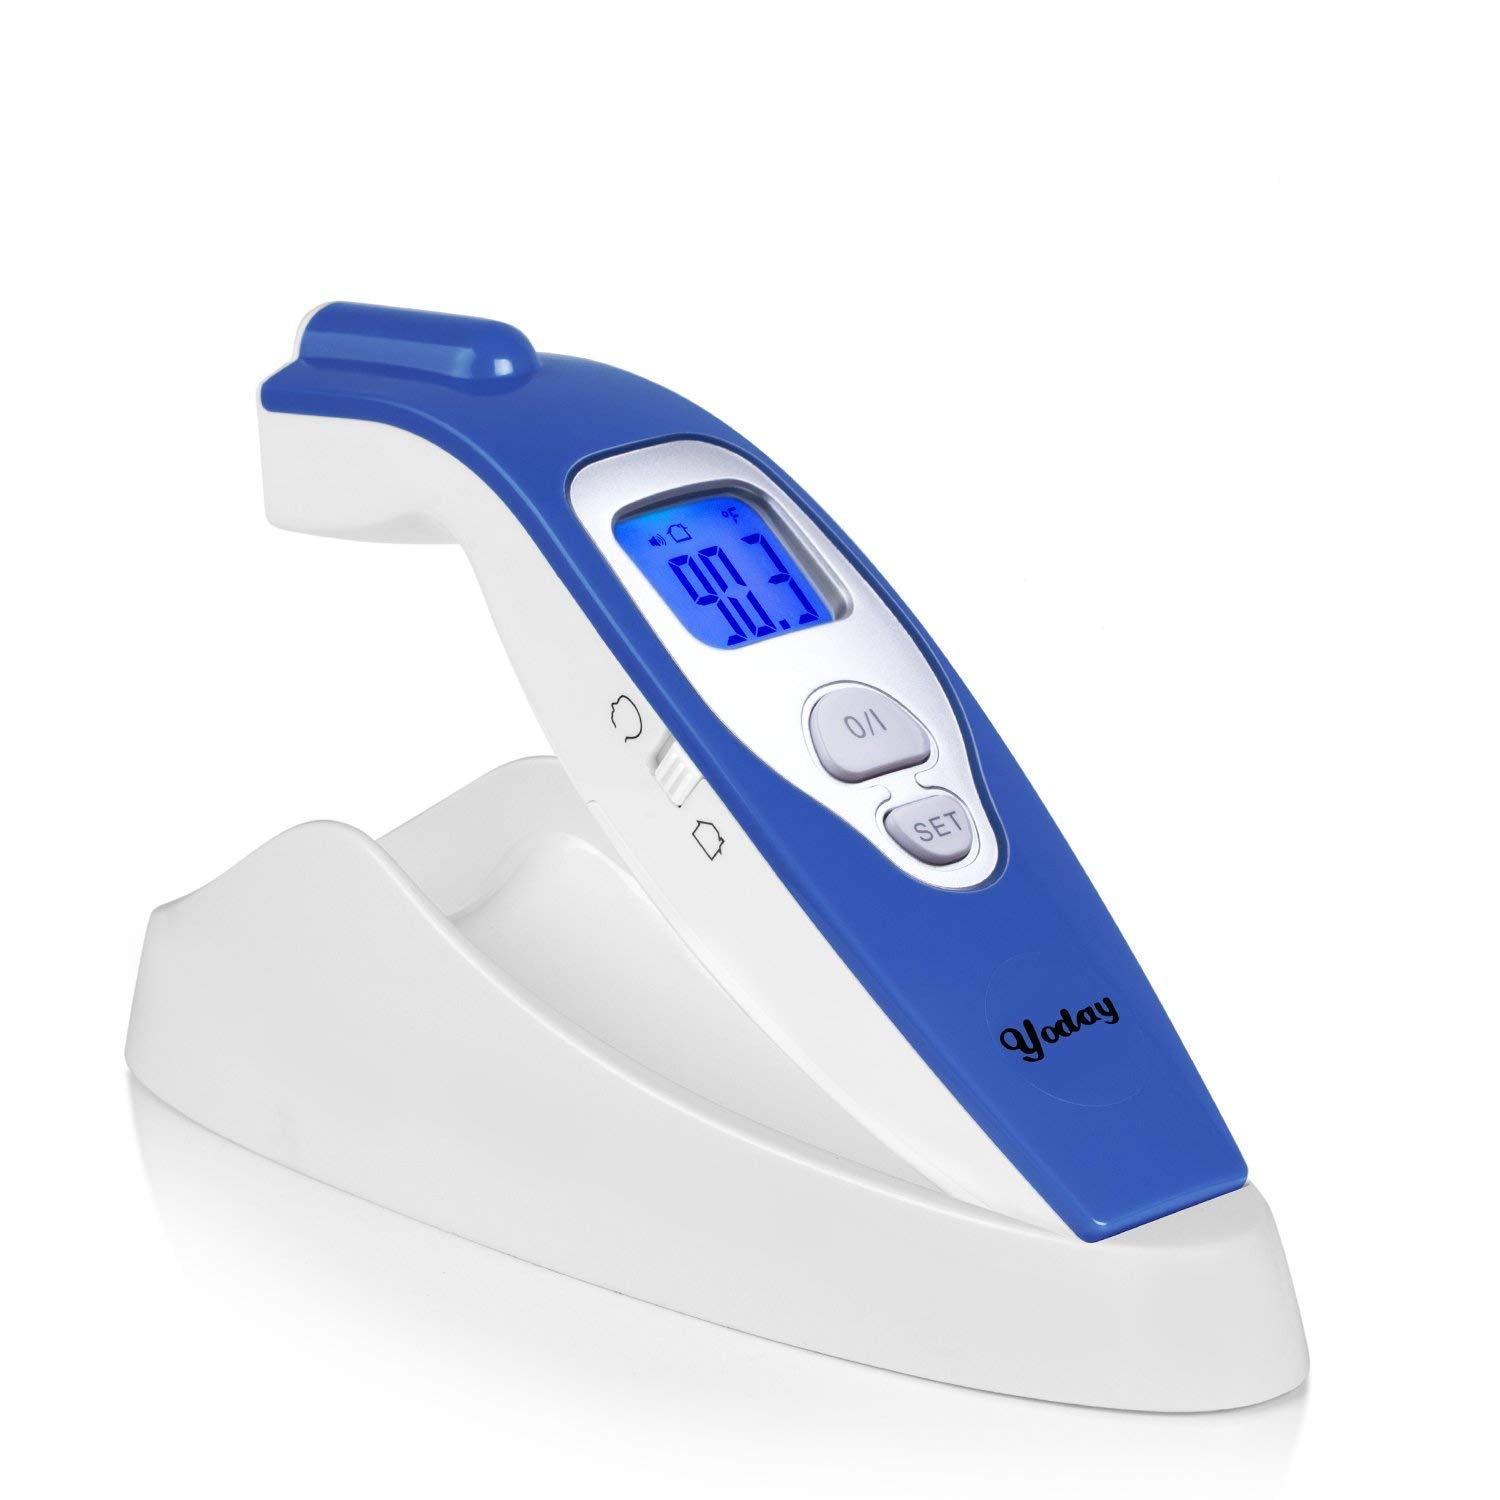 Forehead Digital Thermometer - Non Contact Infrared Medical Clinical Forehead Thermometer for Fever Measurement for Baby/Children/Adults ,Surface & Room Measurement,No Touch Instant Reading (blue)